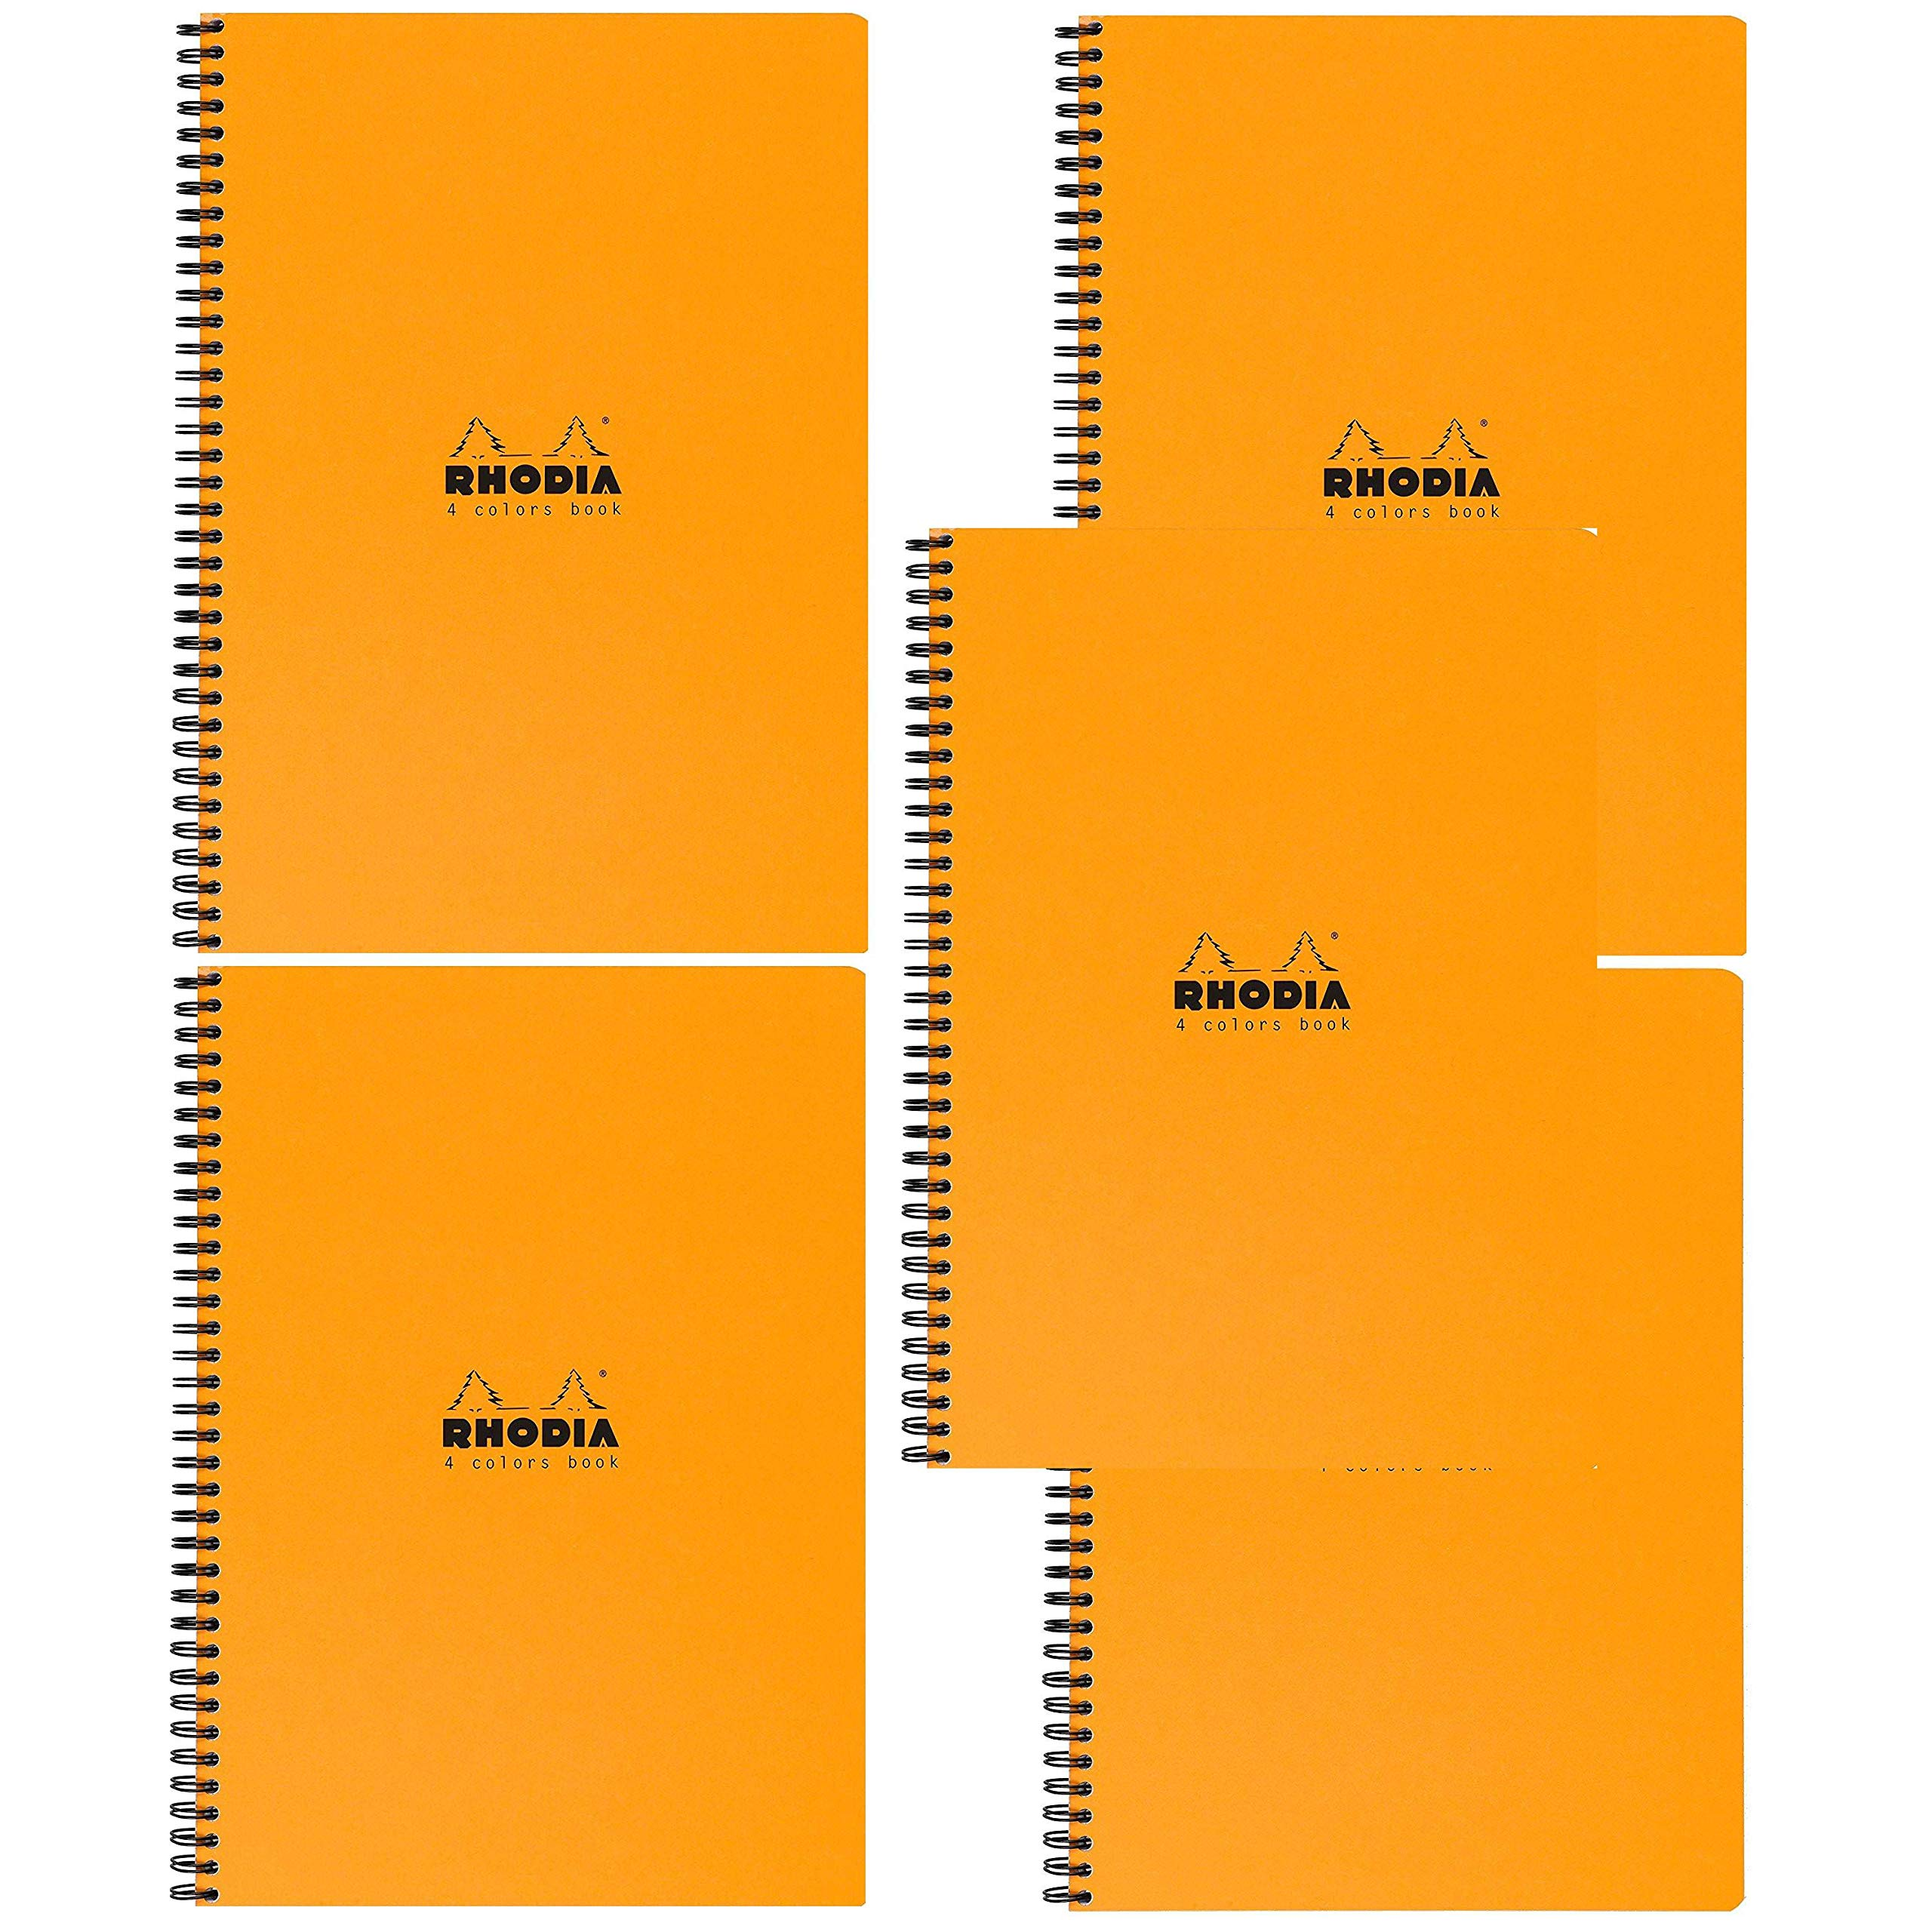 Rhodia 4 Color Book - Lined w/margin 80 sheets - 9 x 11 3/4 - Orange cover, Pack of 5